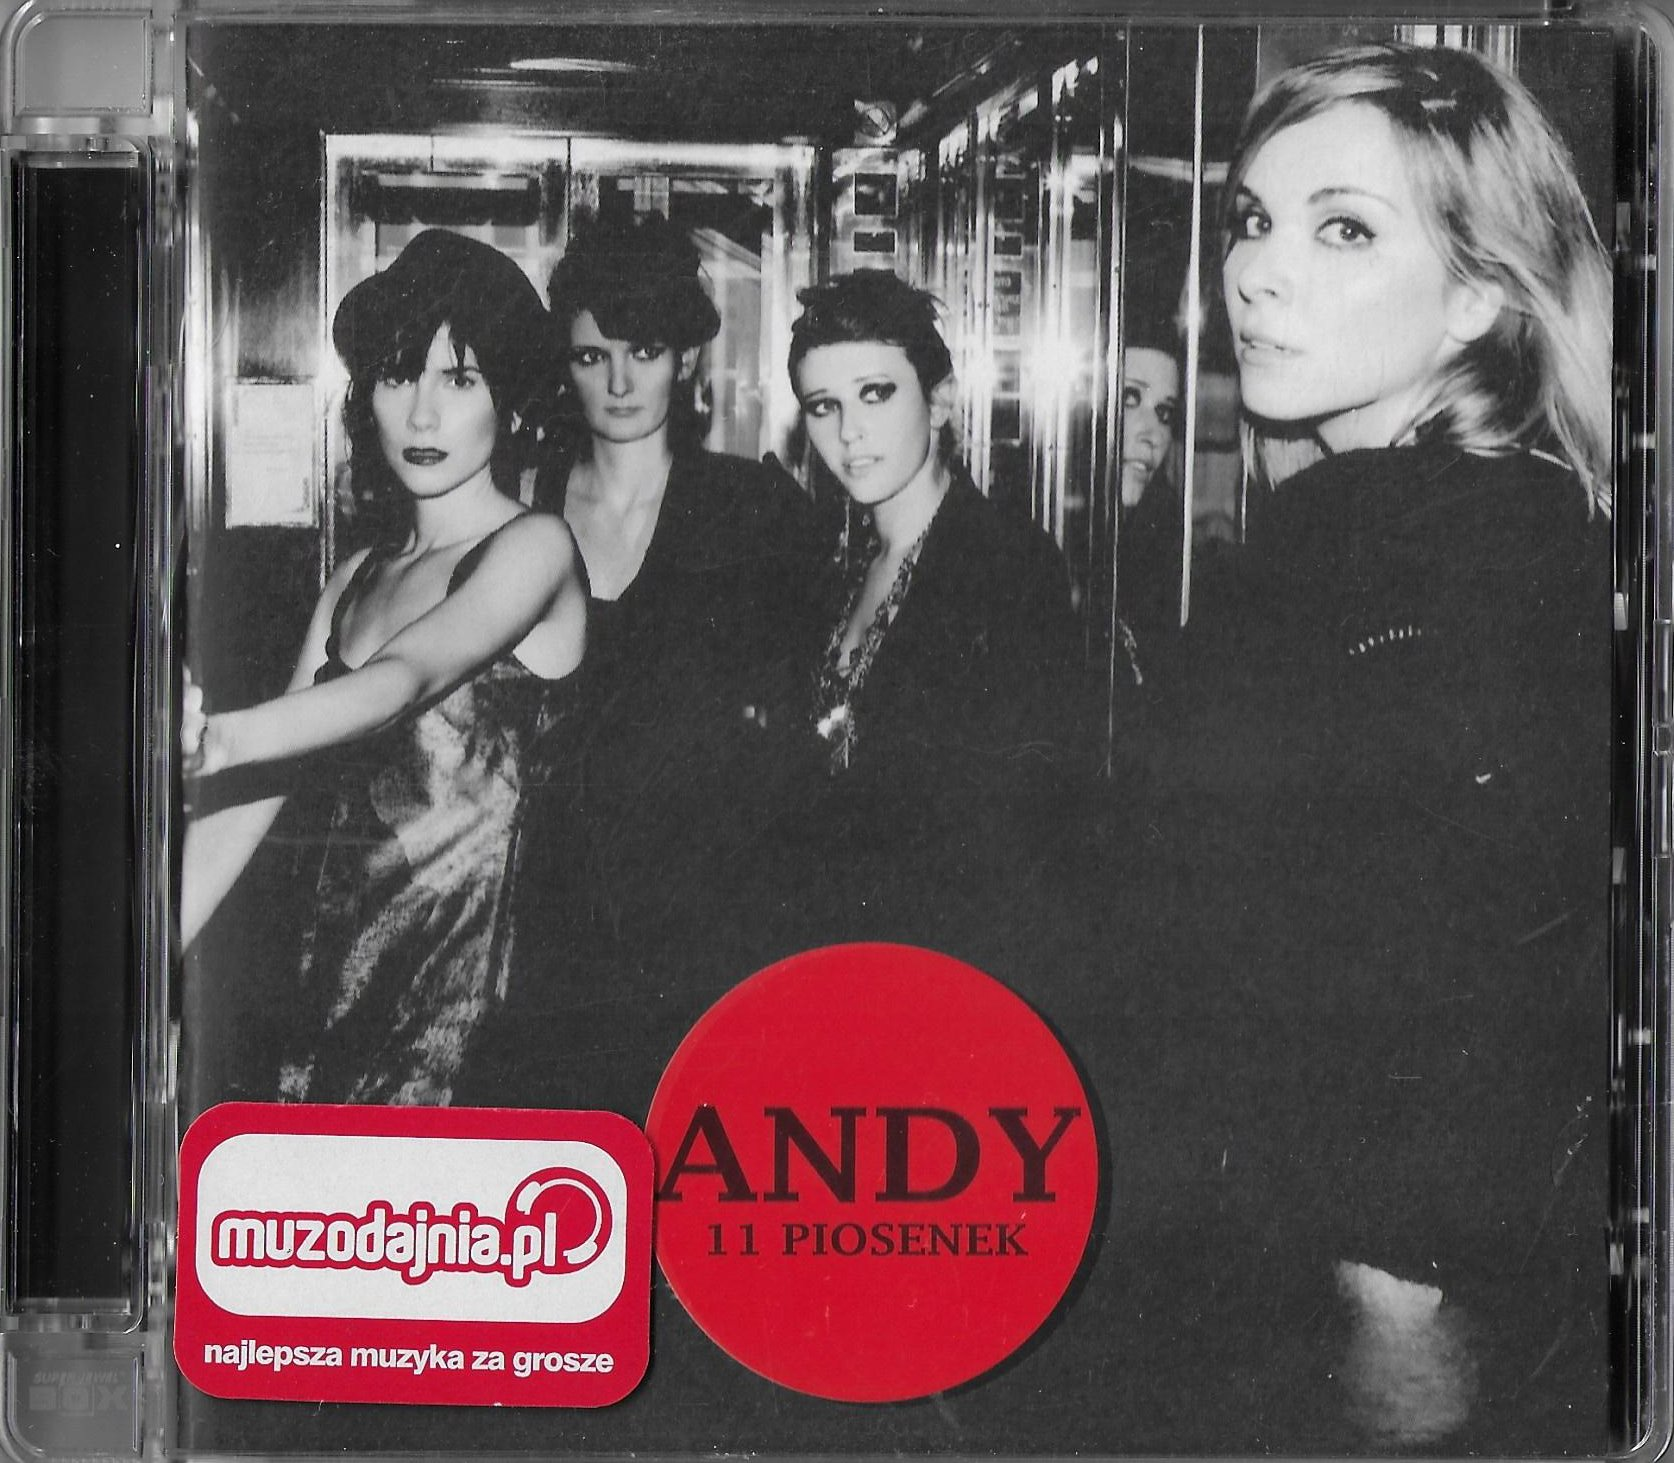 ANDY - 11 piosenek (CD)